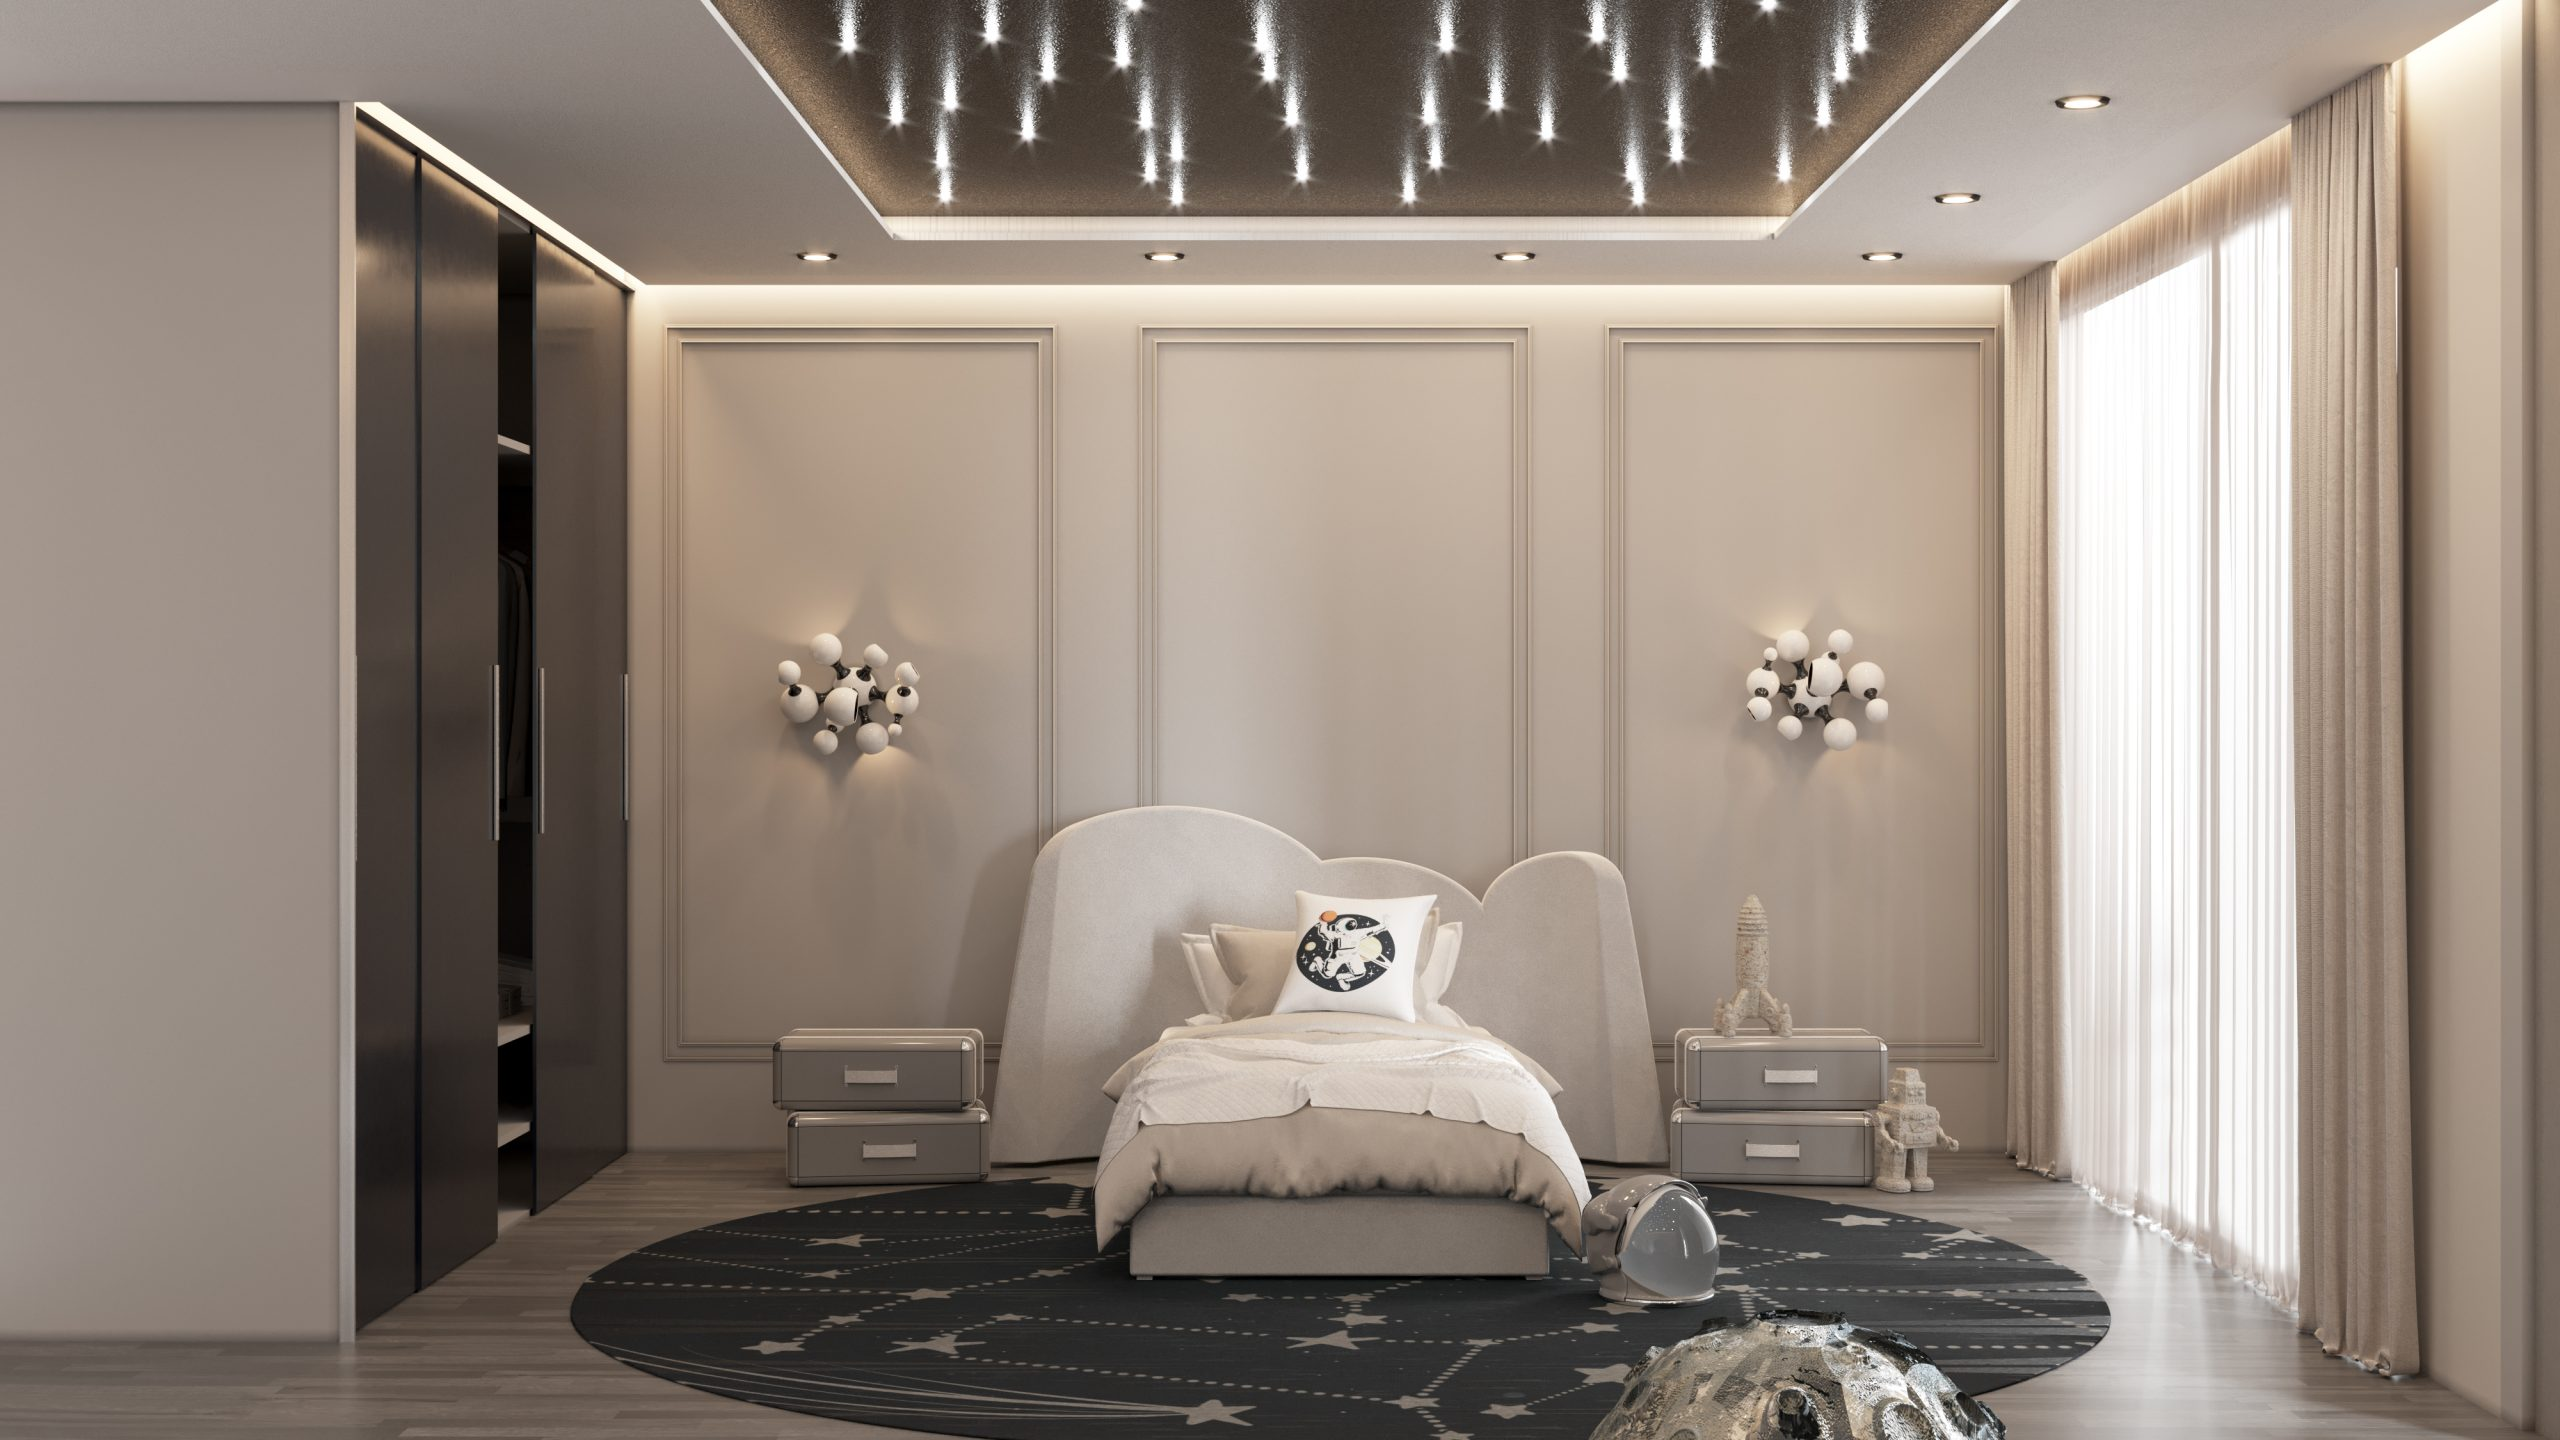 Luxury Space Theme Kids Room and playroom luxury space theme kids room Luxury Space Theme Kids Room: THE STARDOM ROOM CC 03 scaled